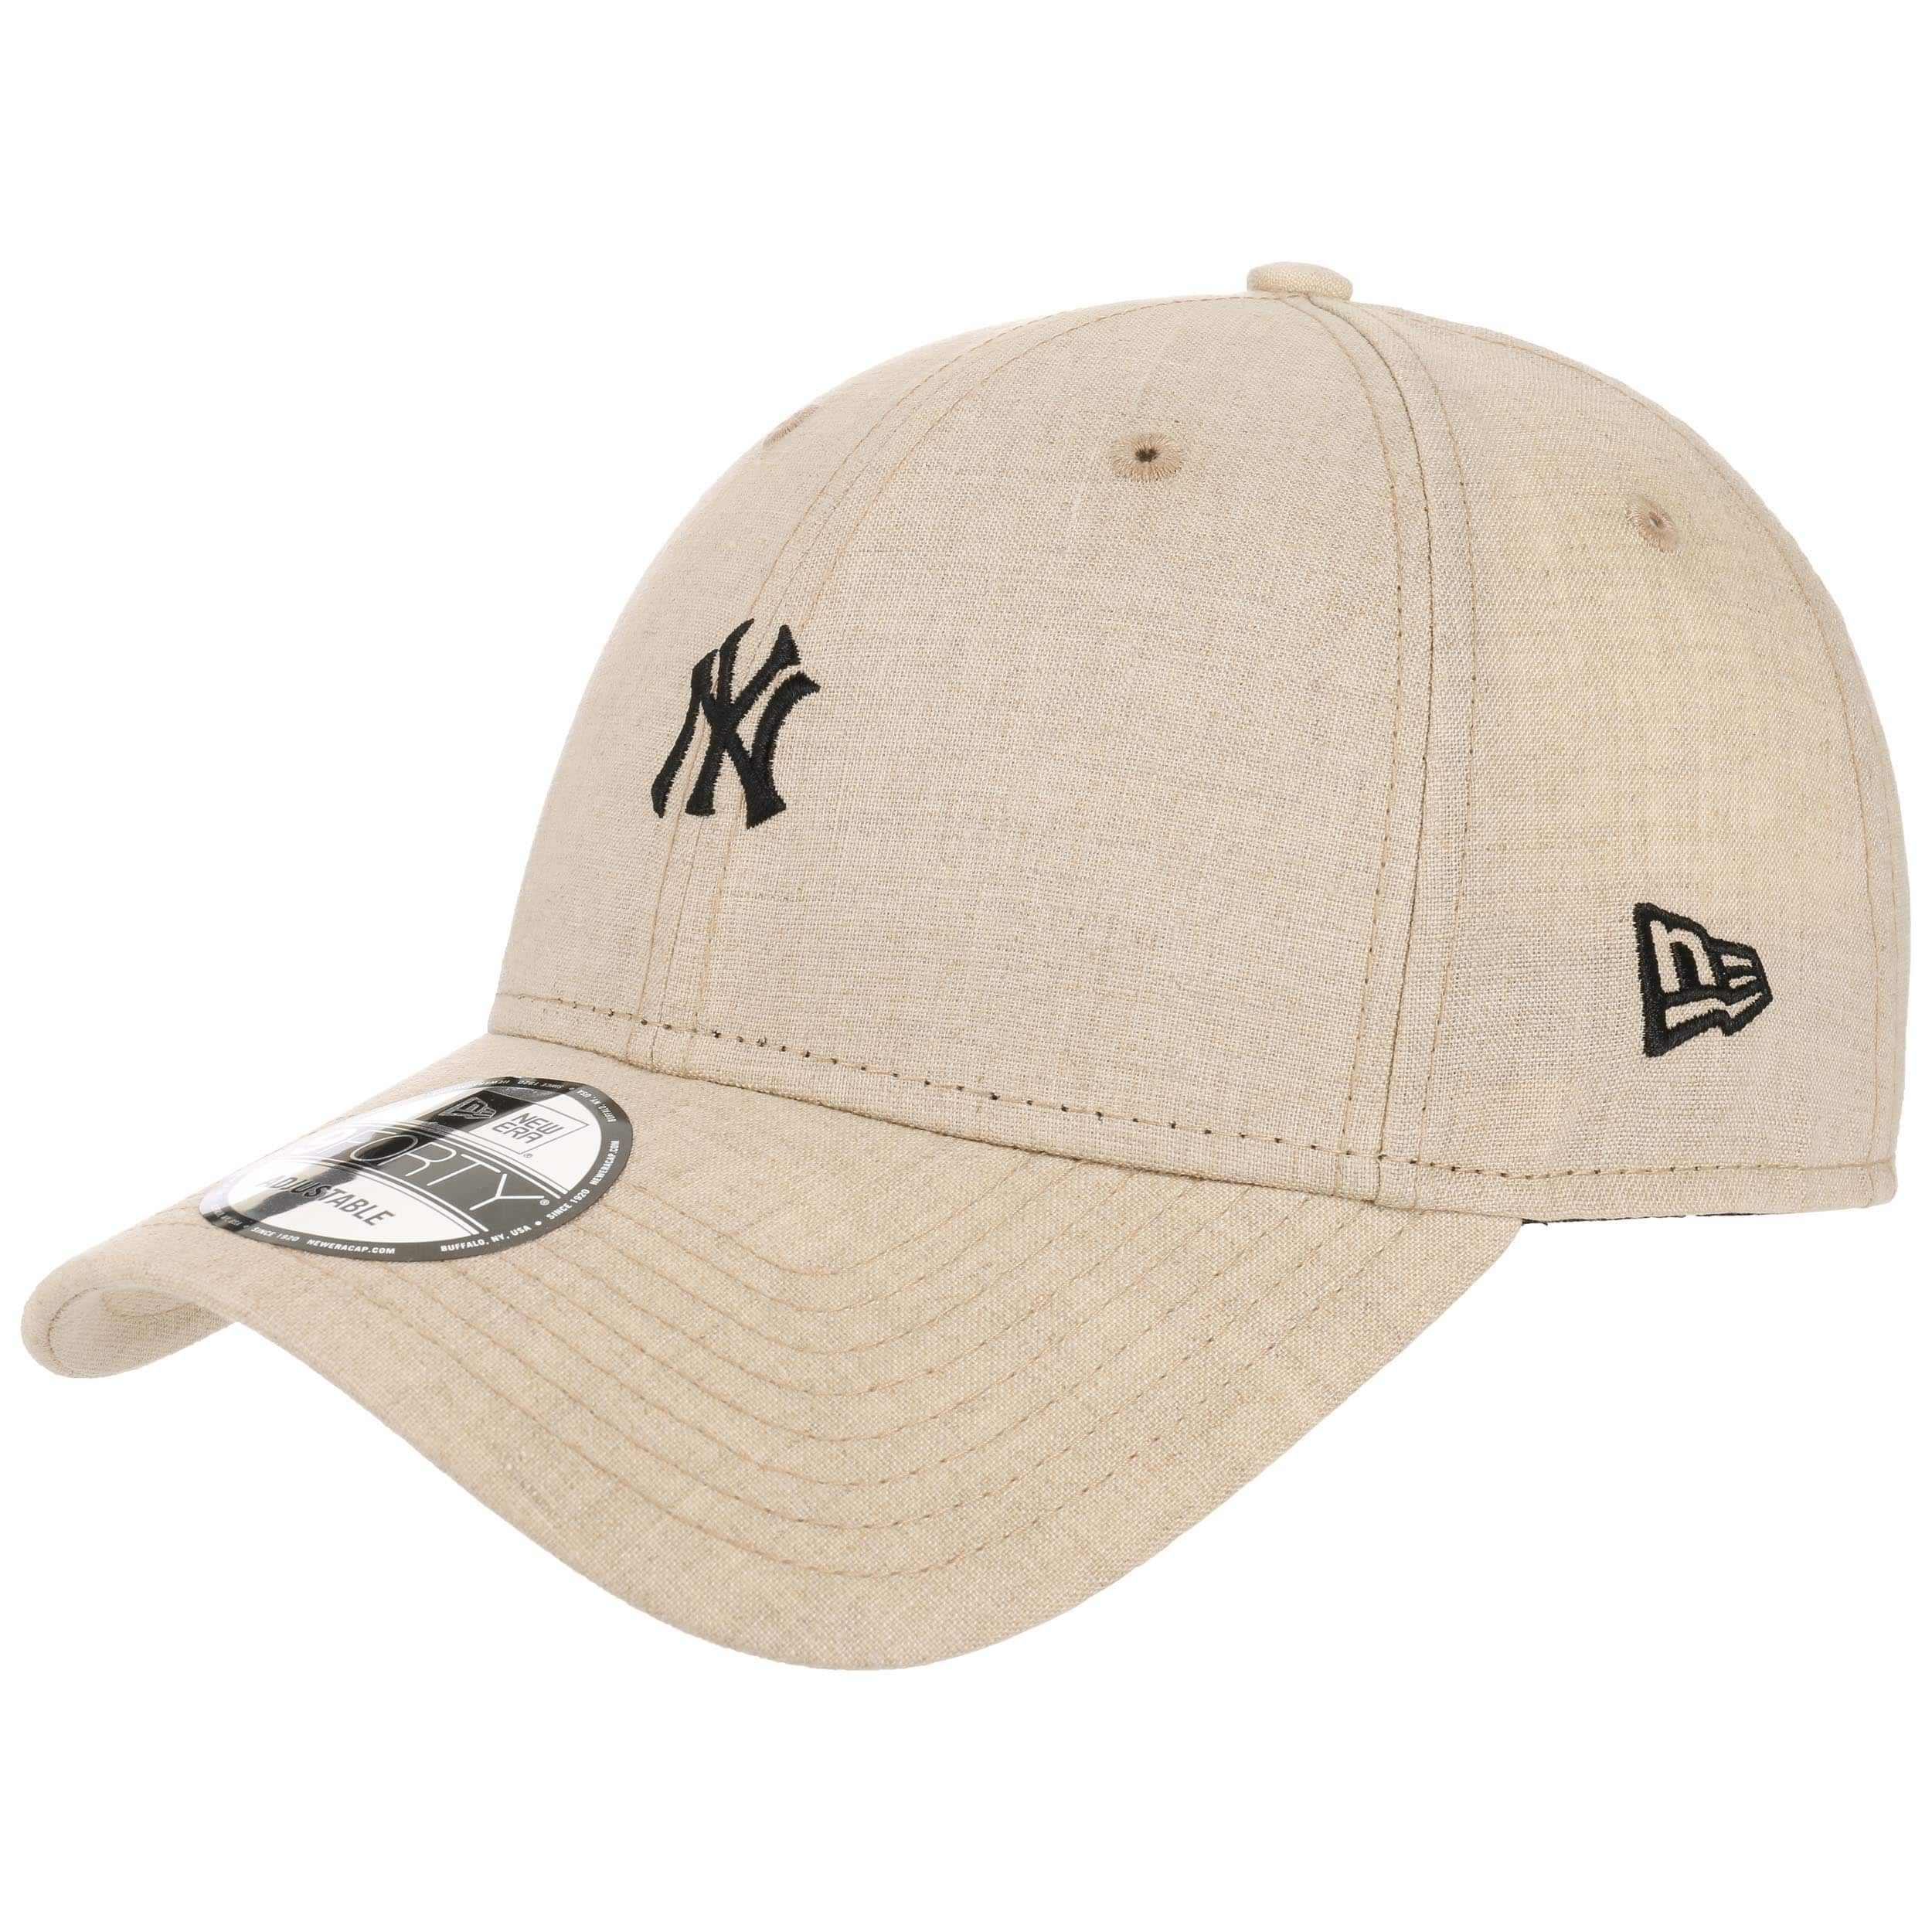 ... 9Forty Small Logo Yankees Cap by New Era - oatmeal 6 10b8a072c04